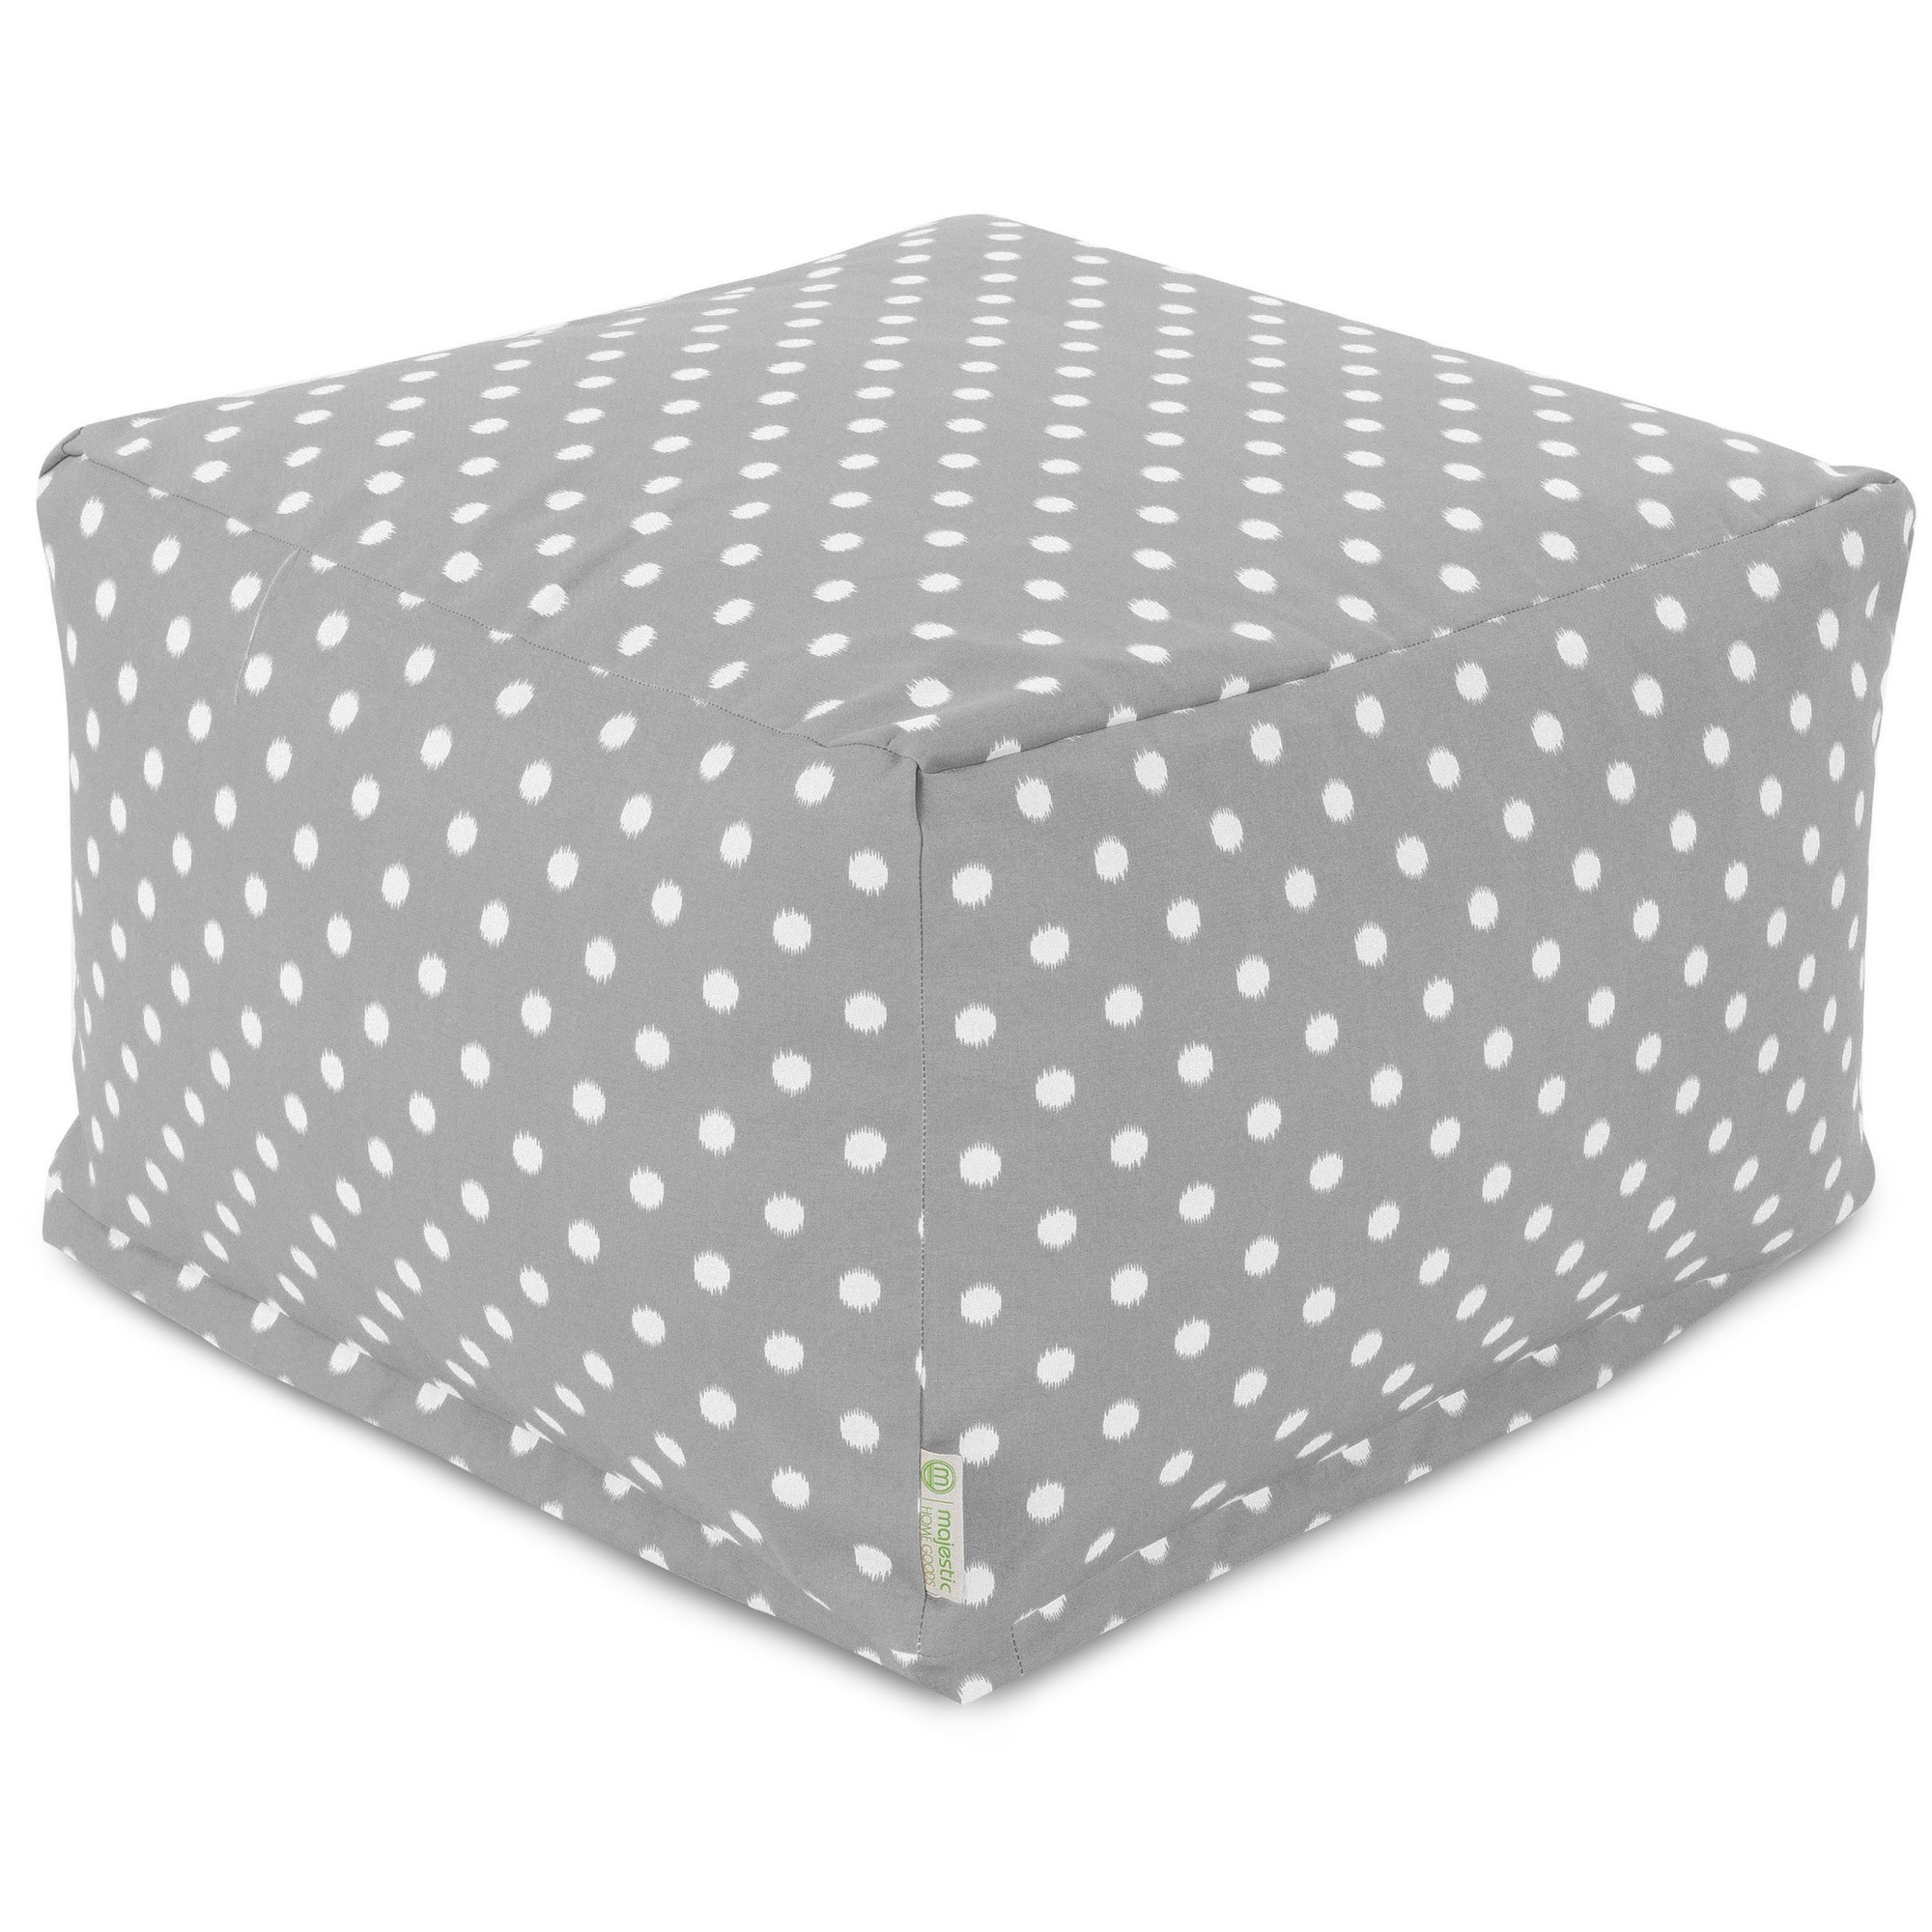 Majestic Home Goods Indoor Outdoor Treated Polyester Gray Ikat Dot Ottoman Pouf